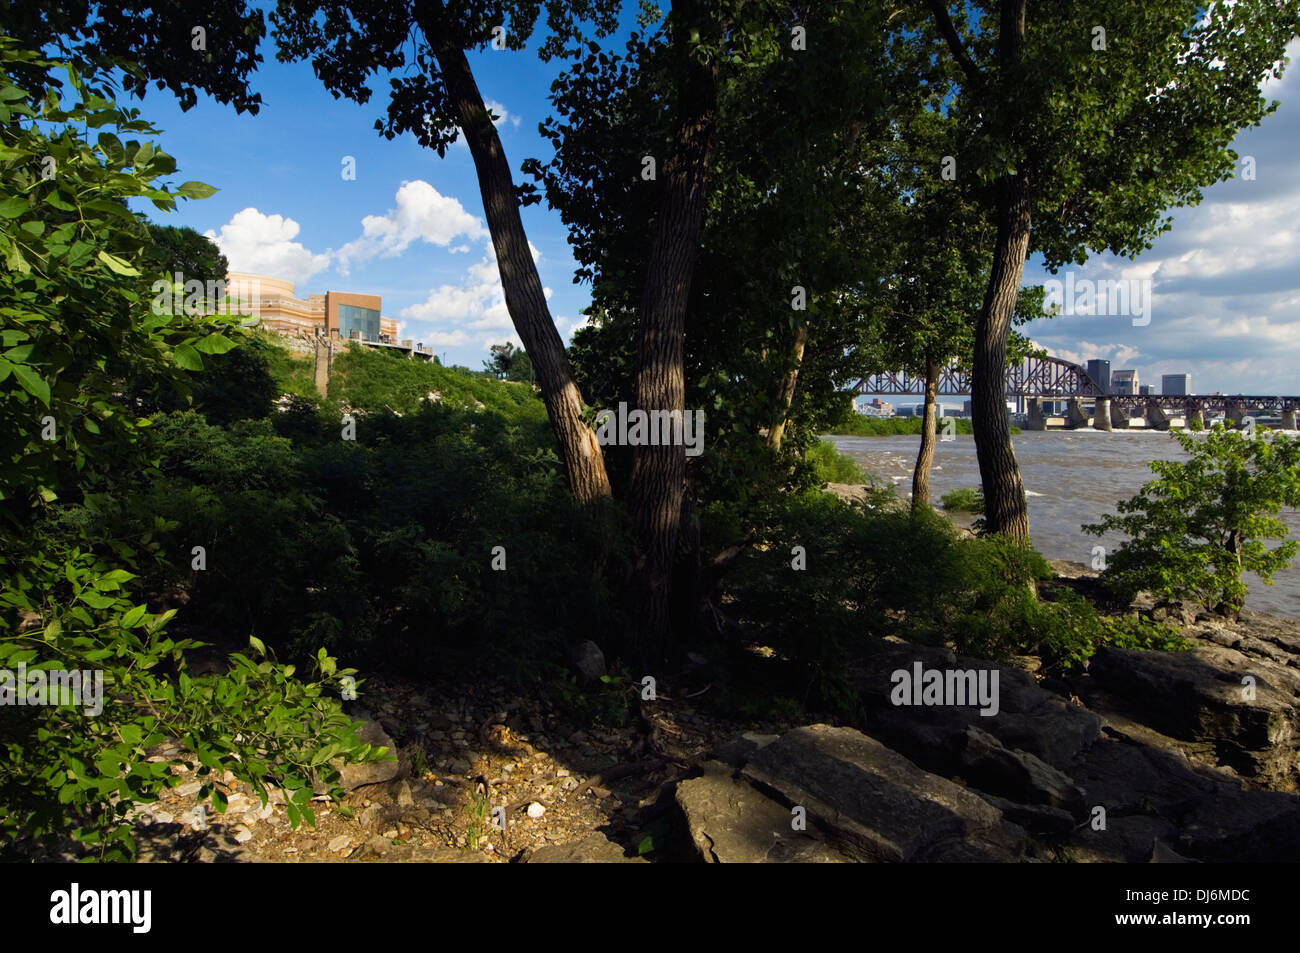 View of the Interpretive Center at Falls of the Ohio State Park with the Ohio River and the City of Louisville in the background - Stock Image